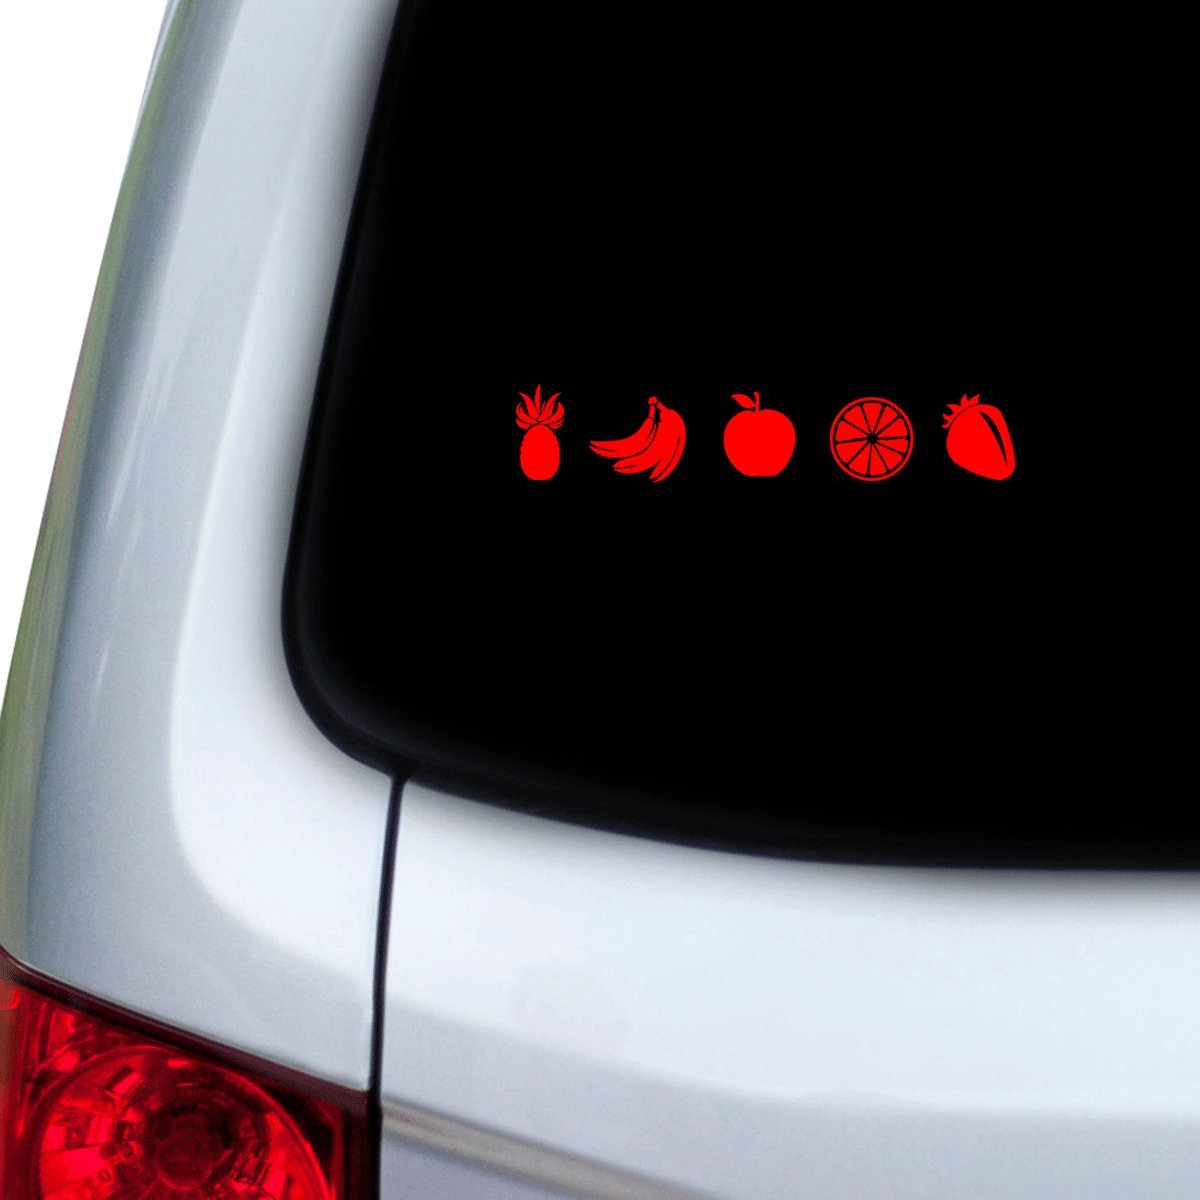 StickAny Car and Auto Decal Series Fruit Icons Sticker for Windows Hoods Red Doors